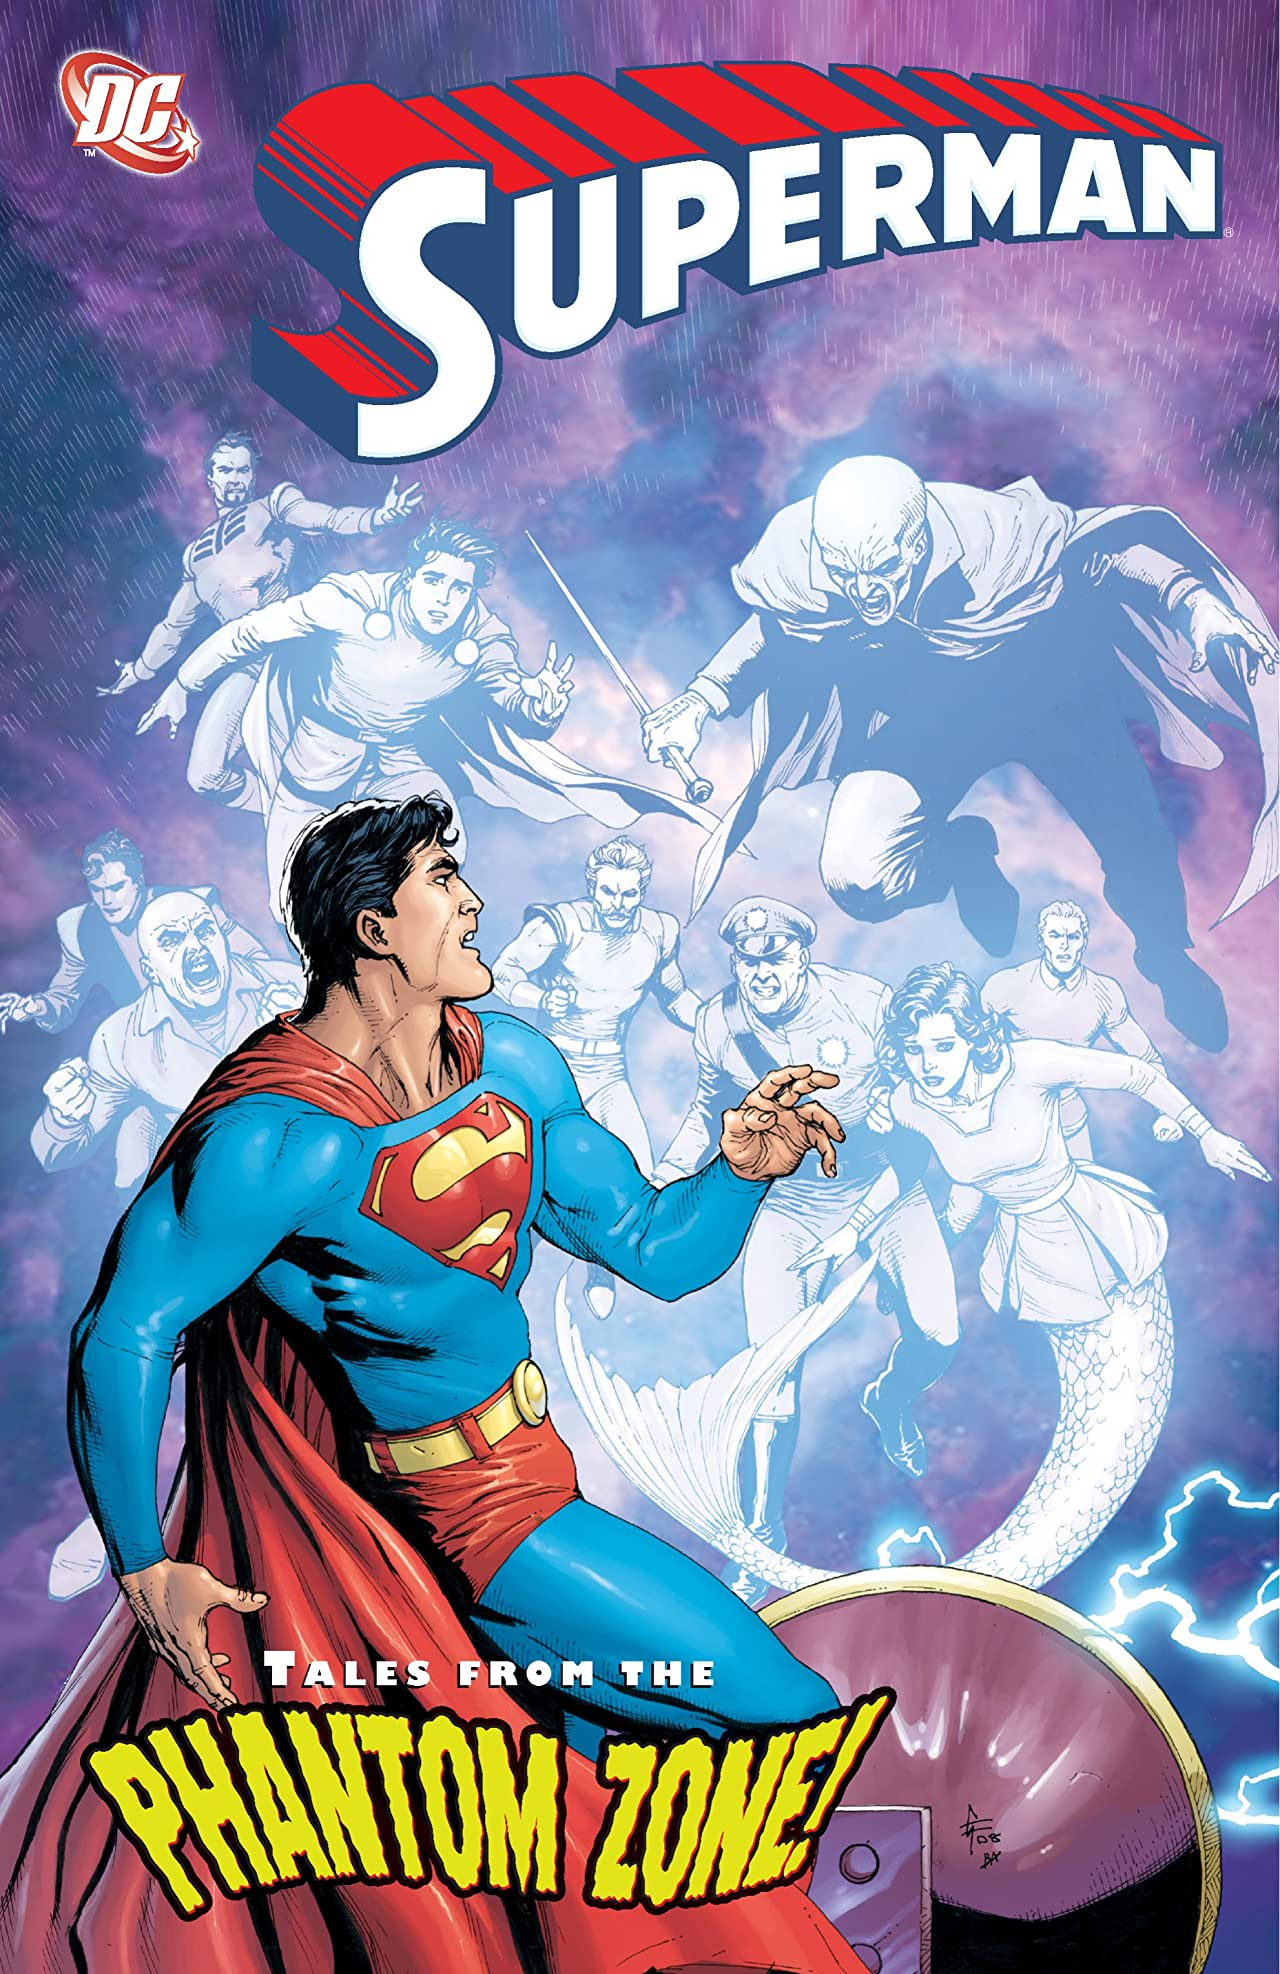 Superman: Tales from the Phantom Zone